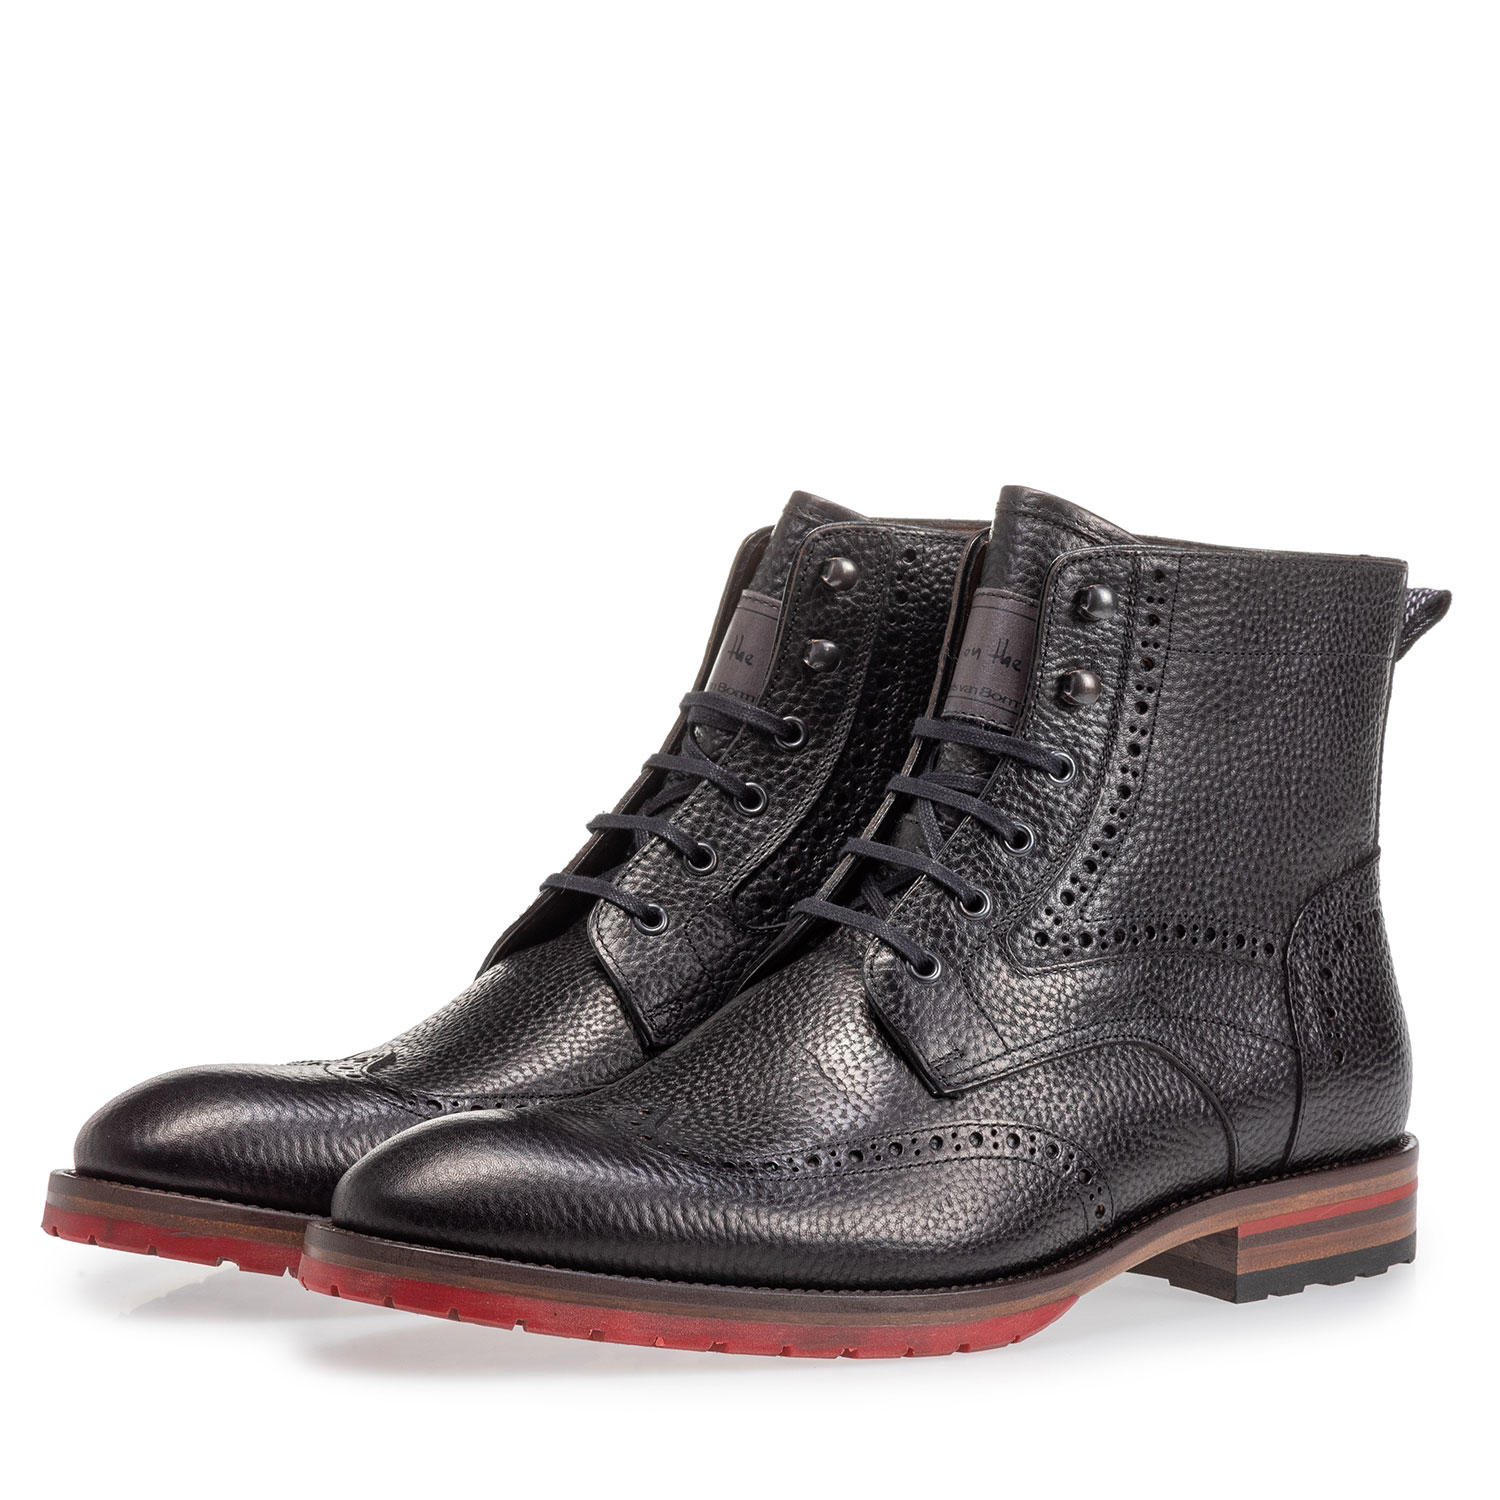 10295/23 - Leather brogue lace boot black